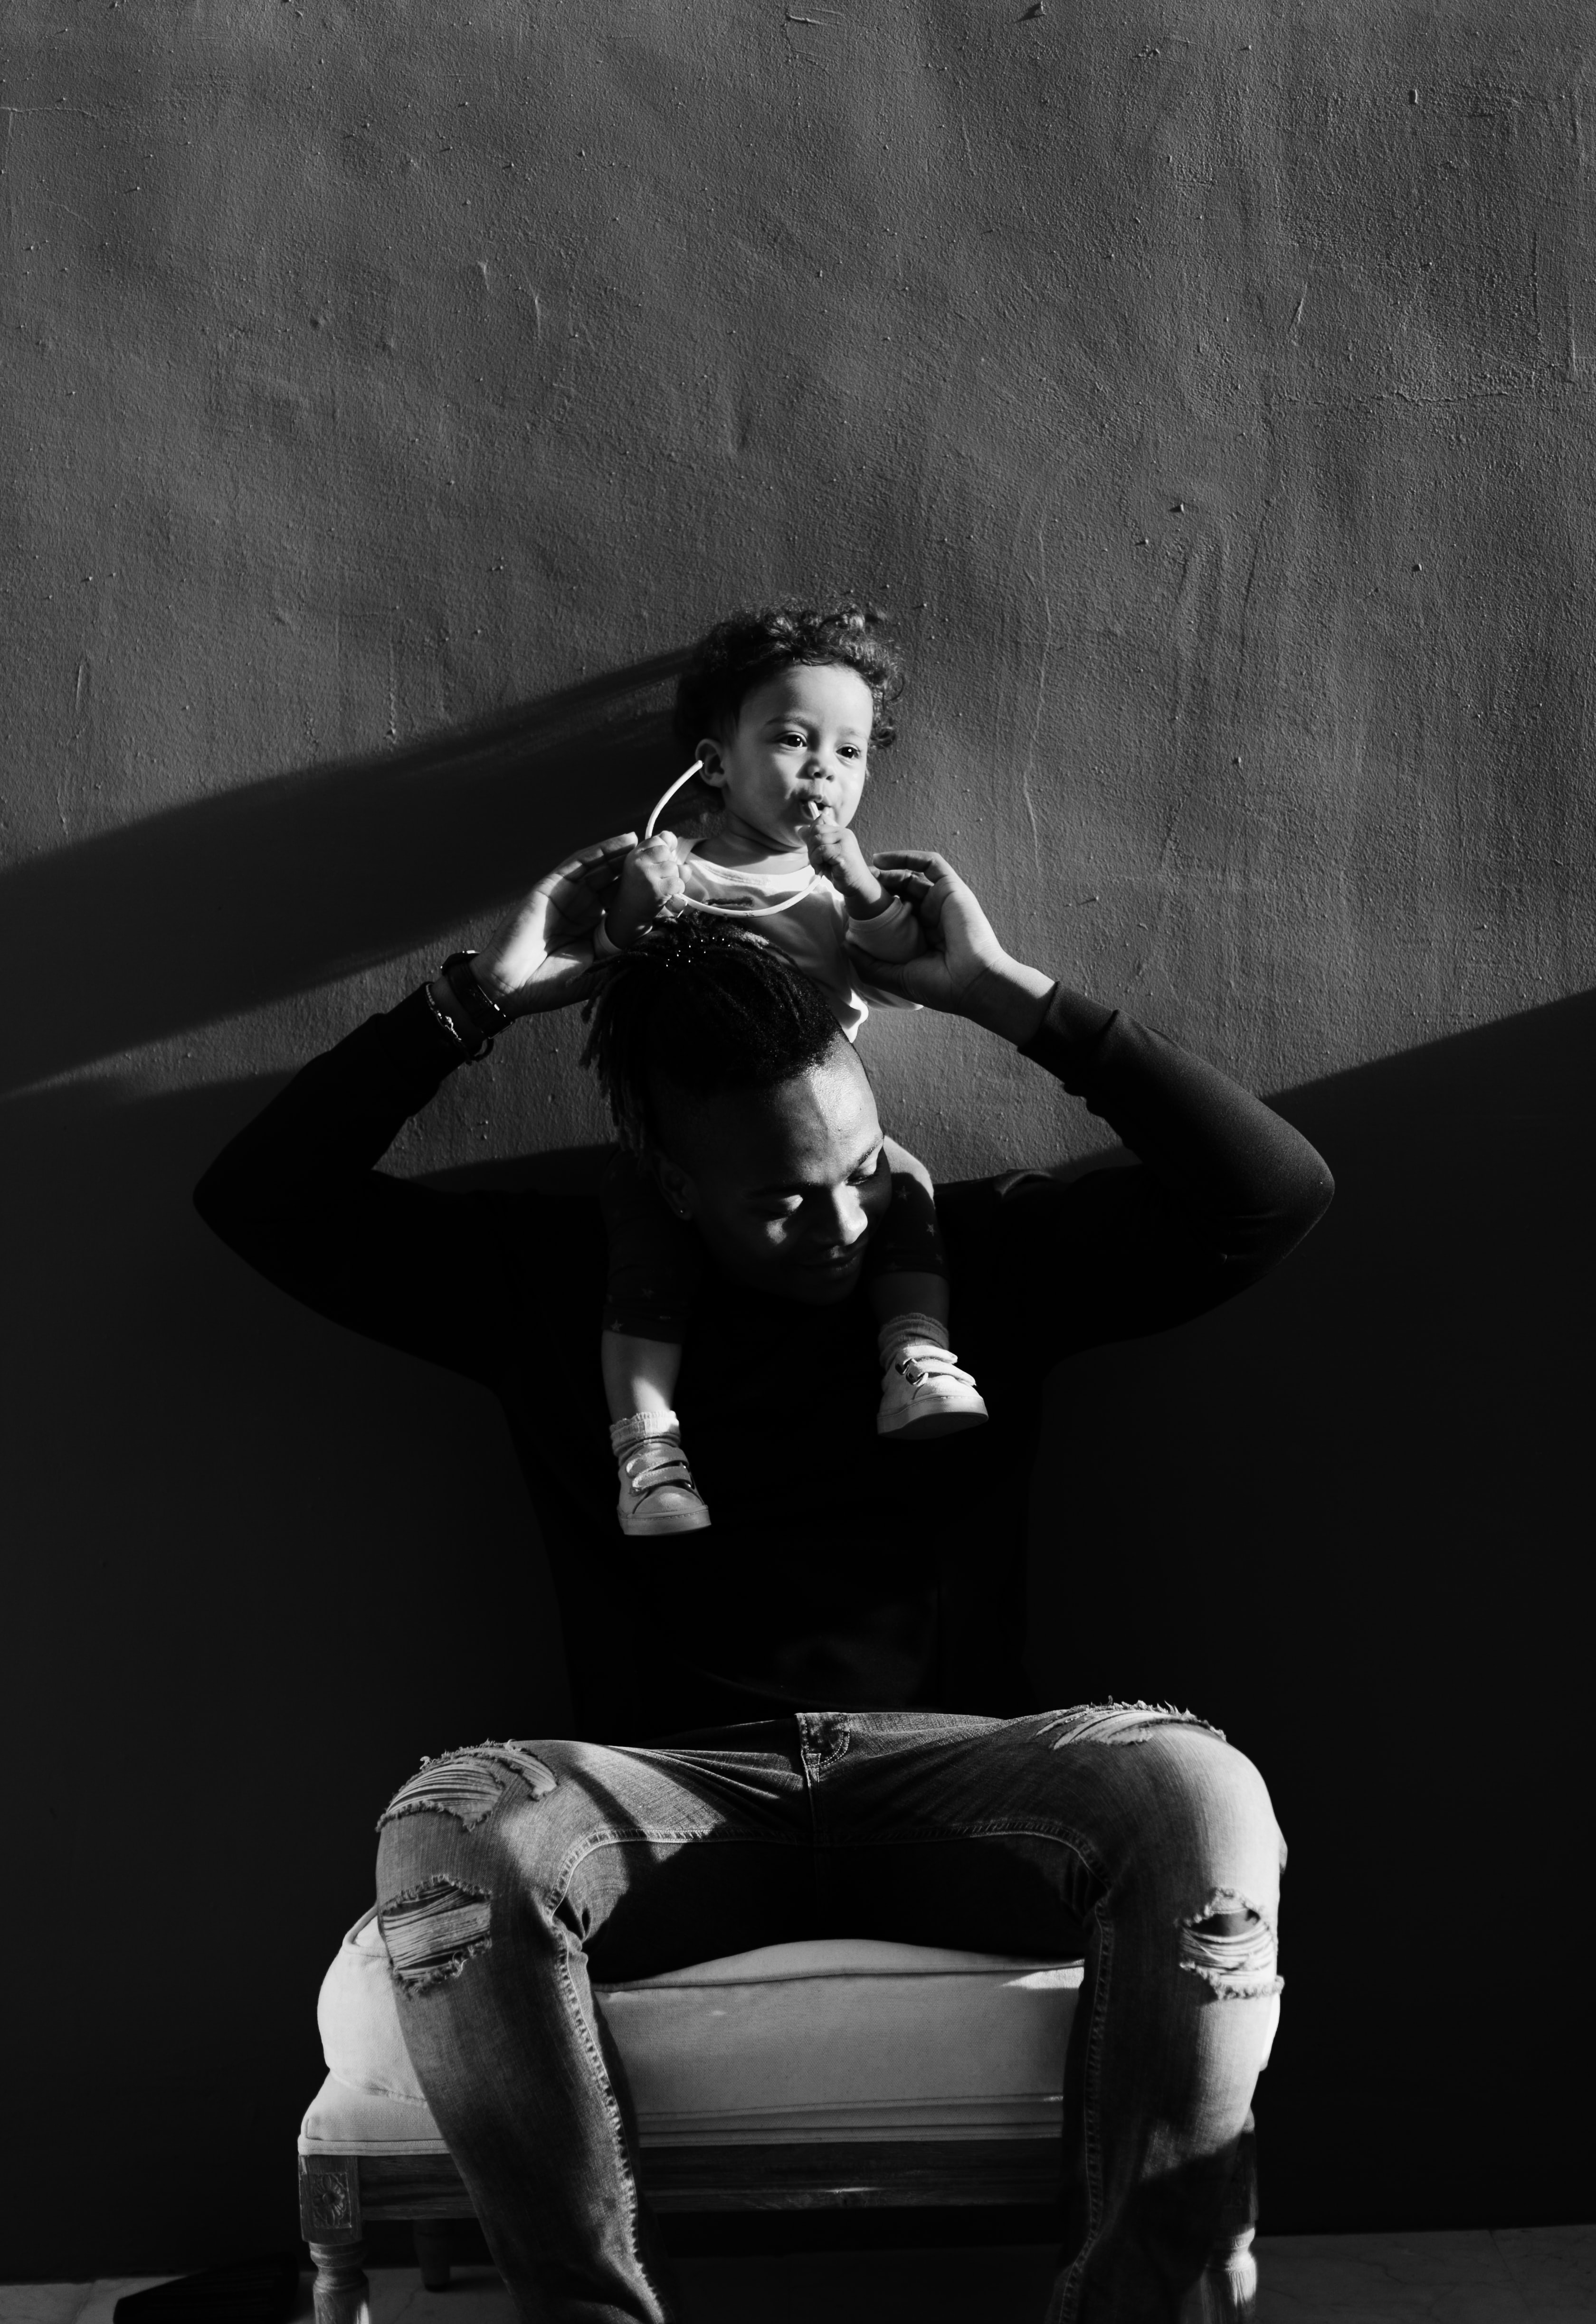 grayscale photography of man lifting a girl